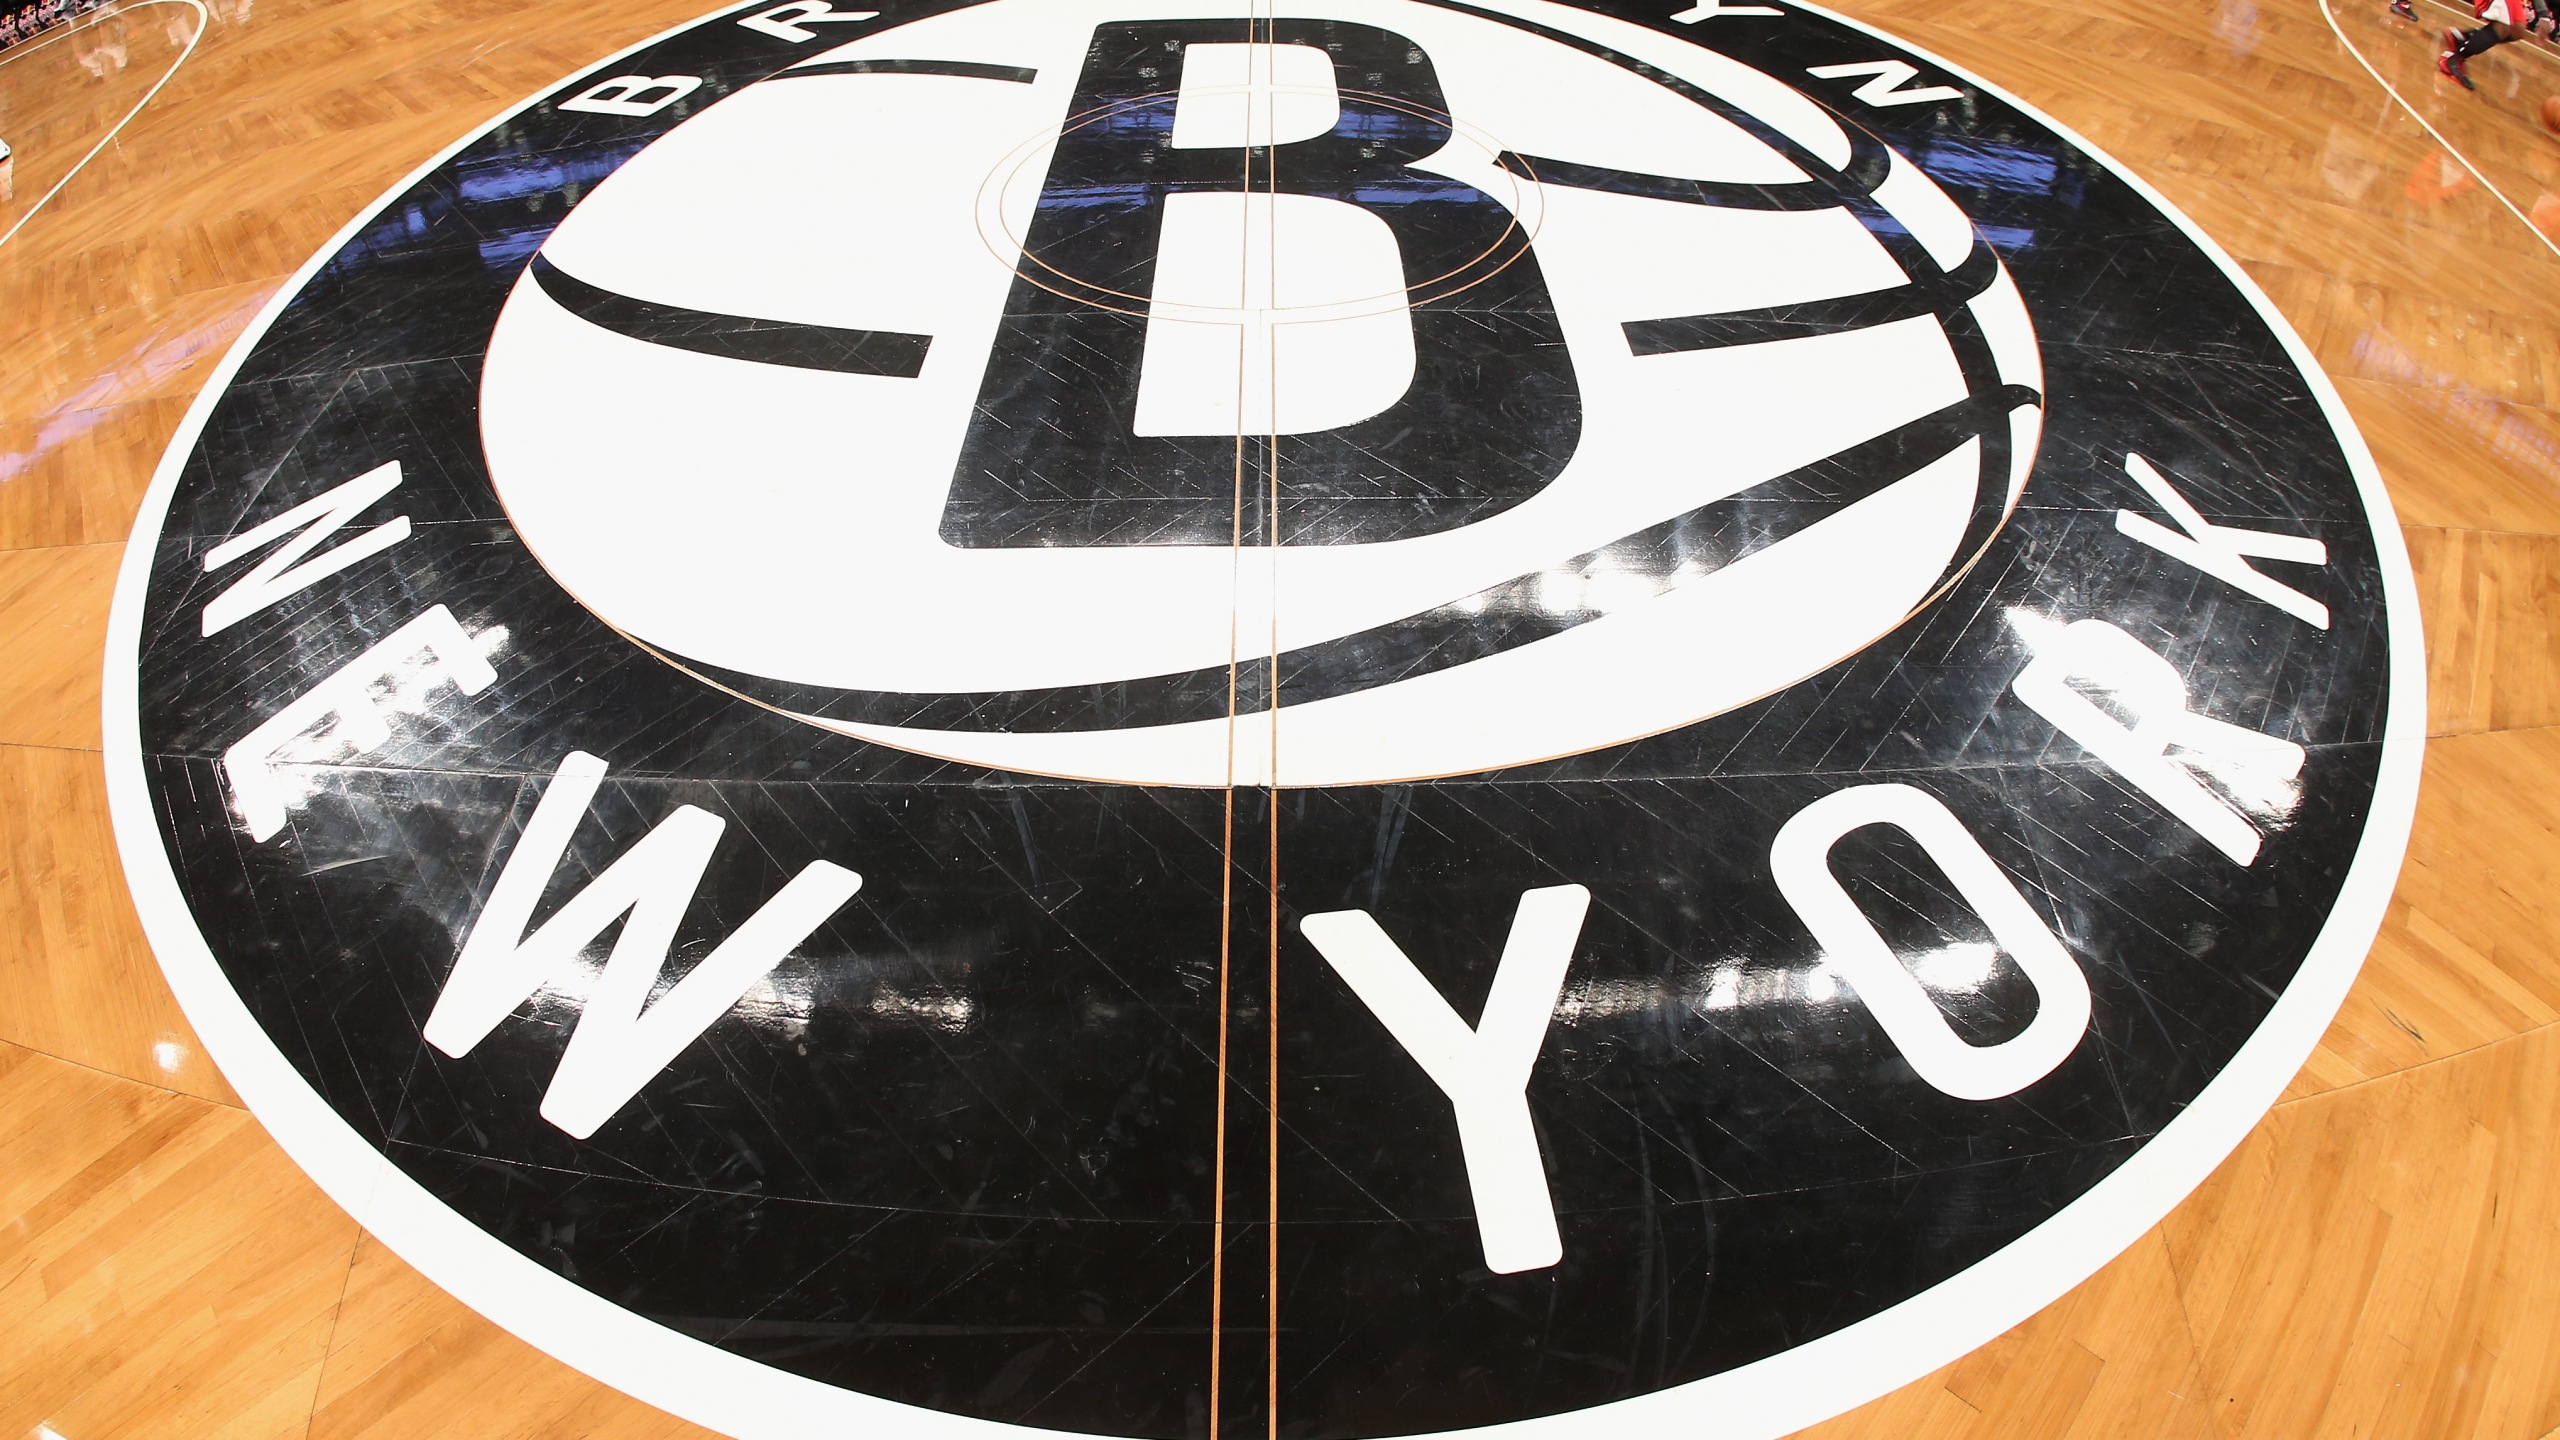 Brooklyn Nets CEO out after just 55 days, teamsays